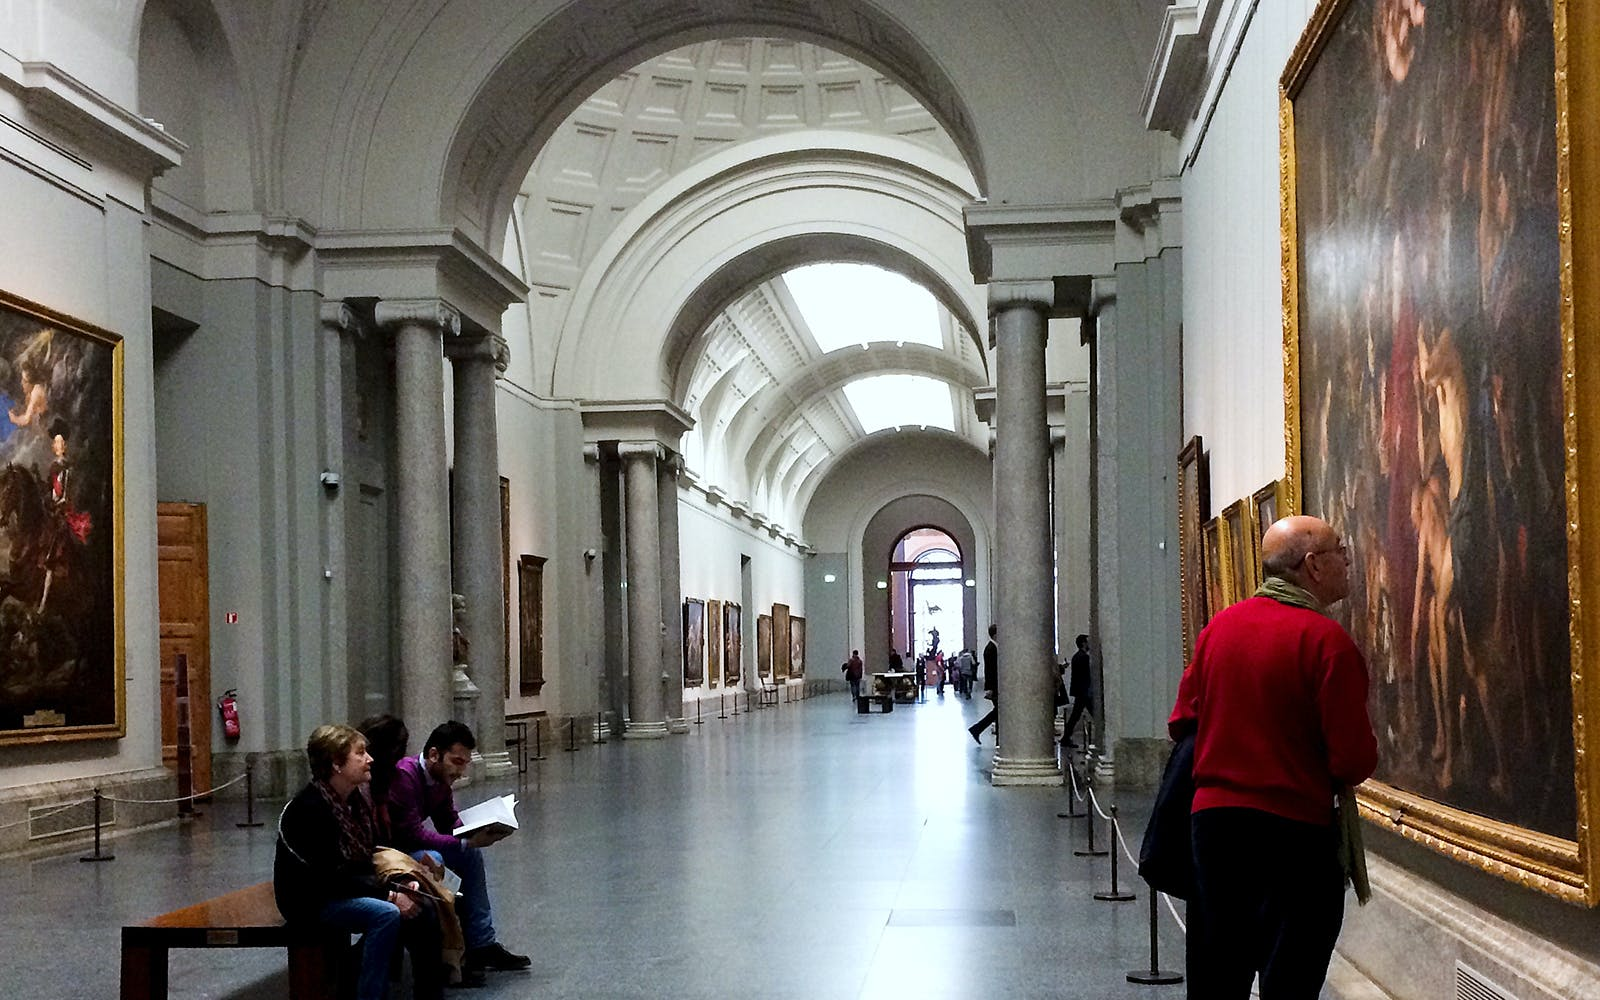 skip the line tickets to prado museum-3